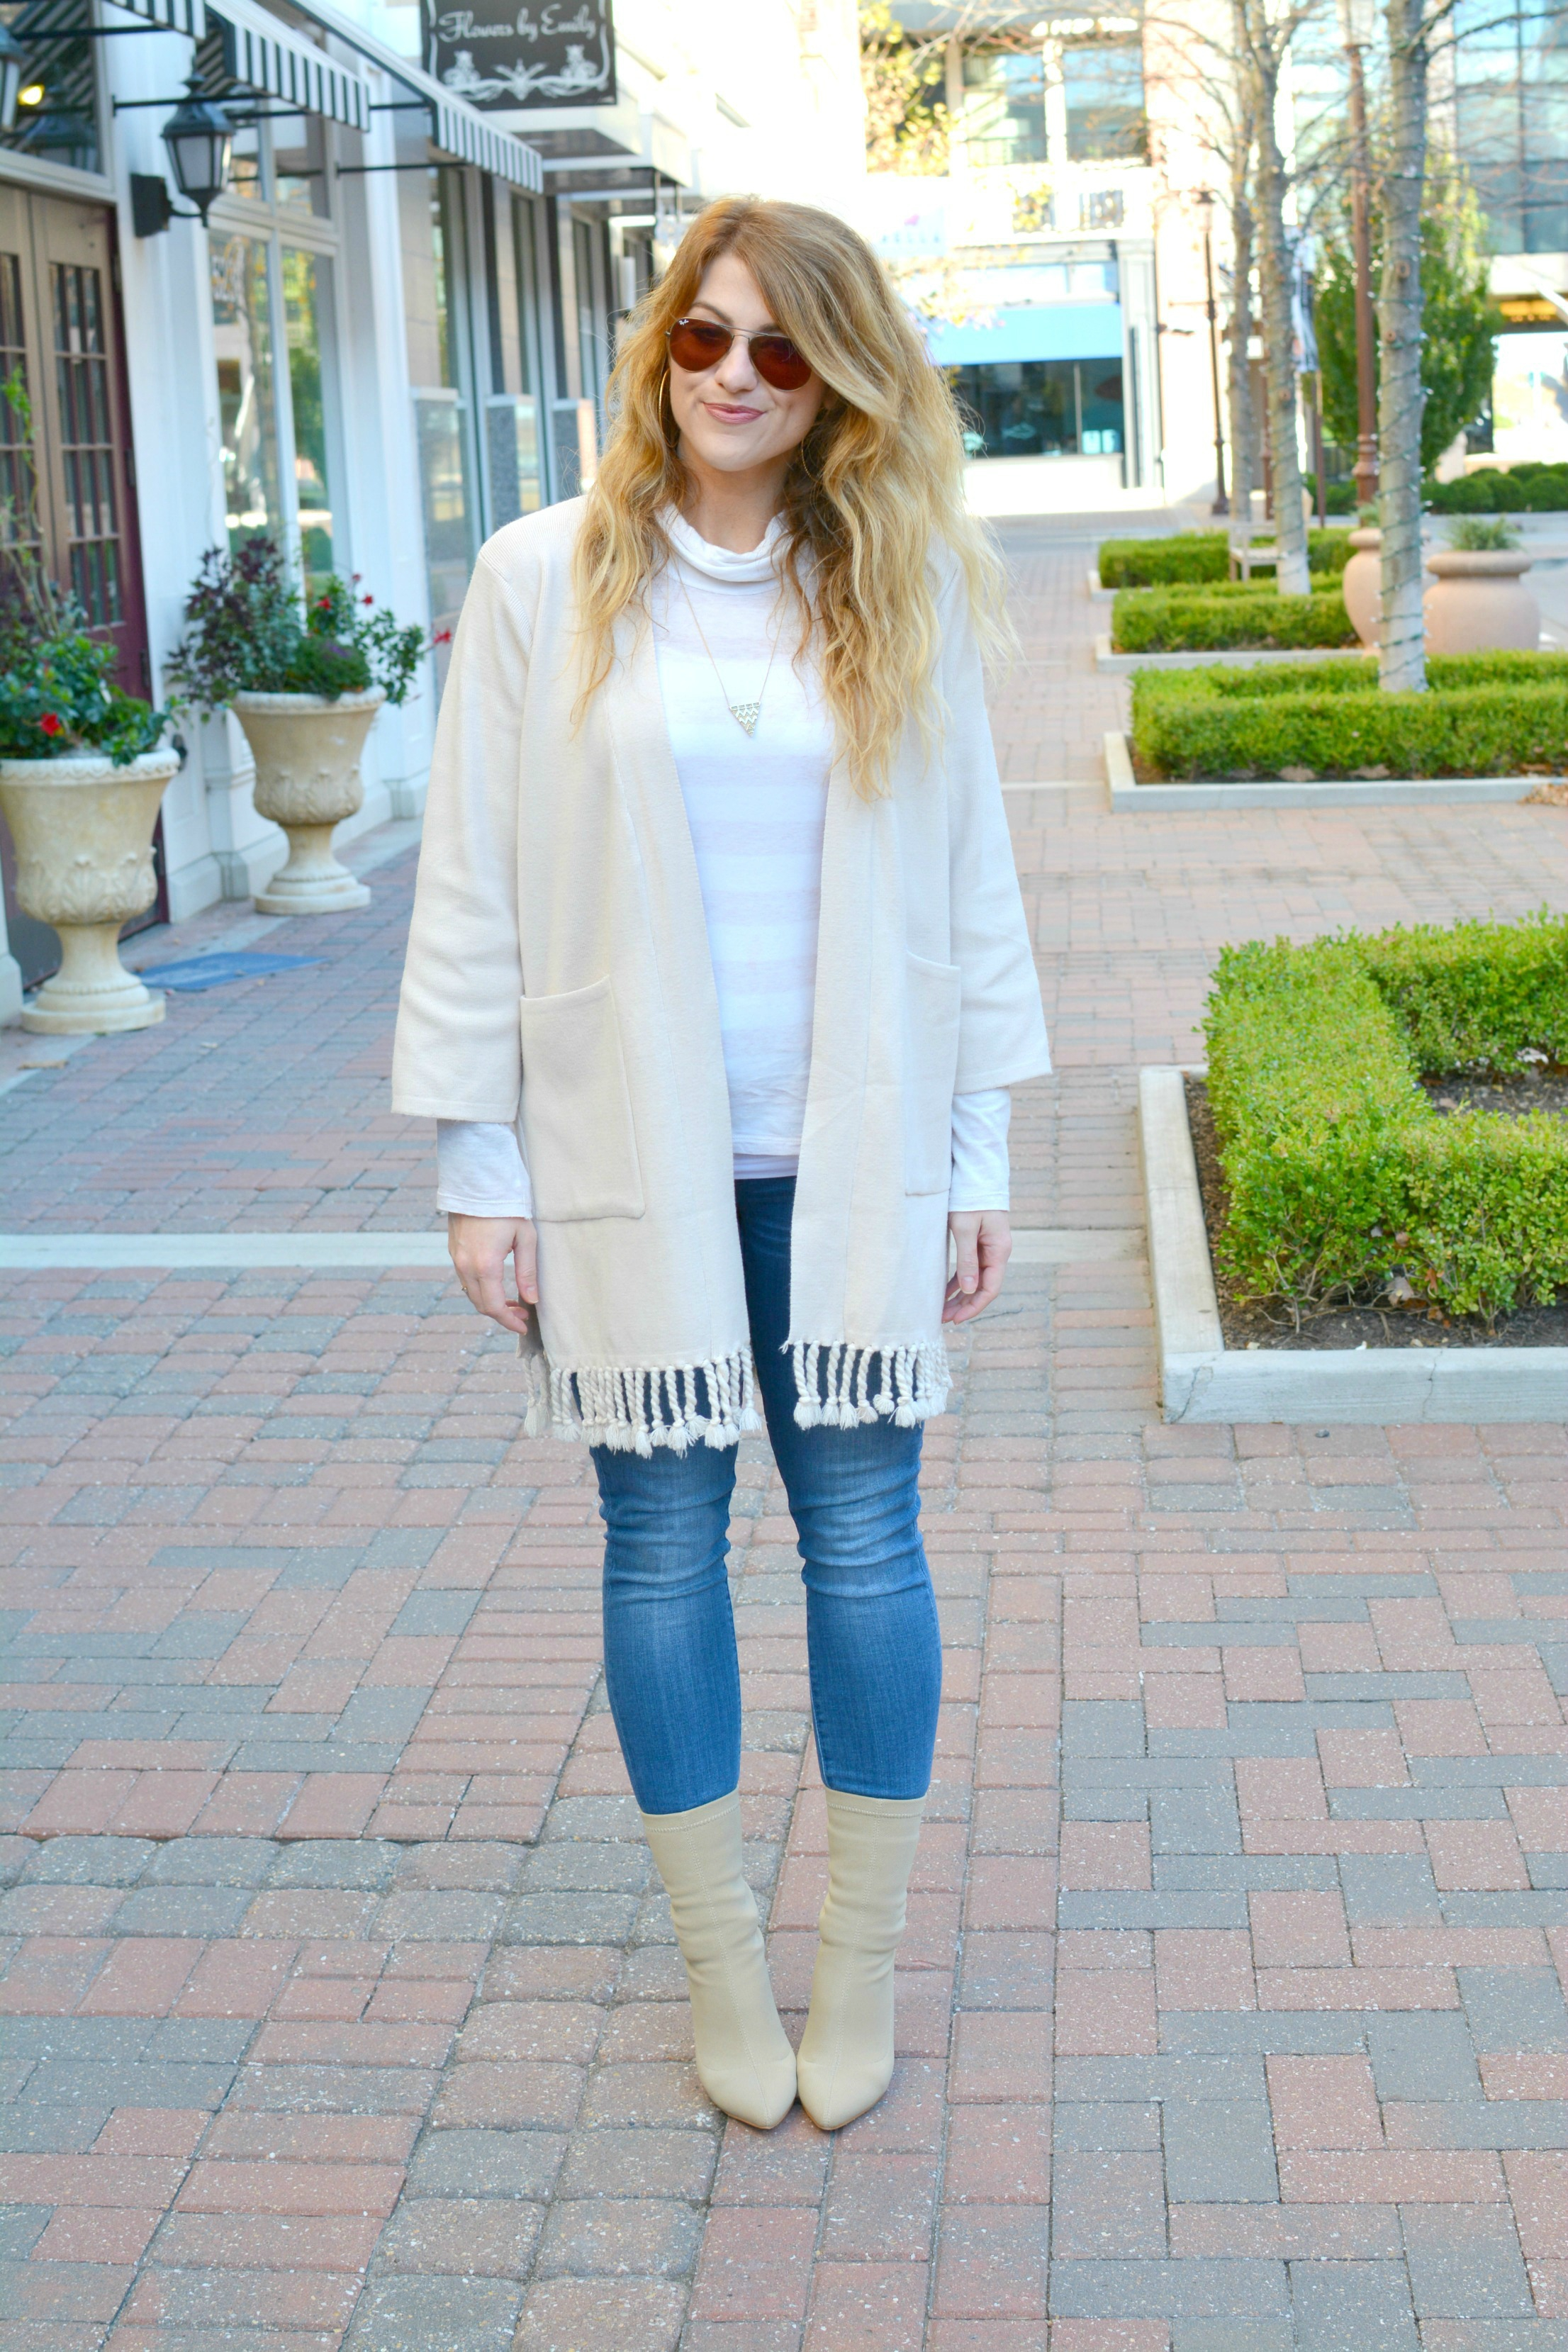 Ashley from LSR in a beige cardigan, skinny jeans, and nude sock boots